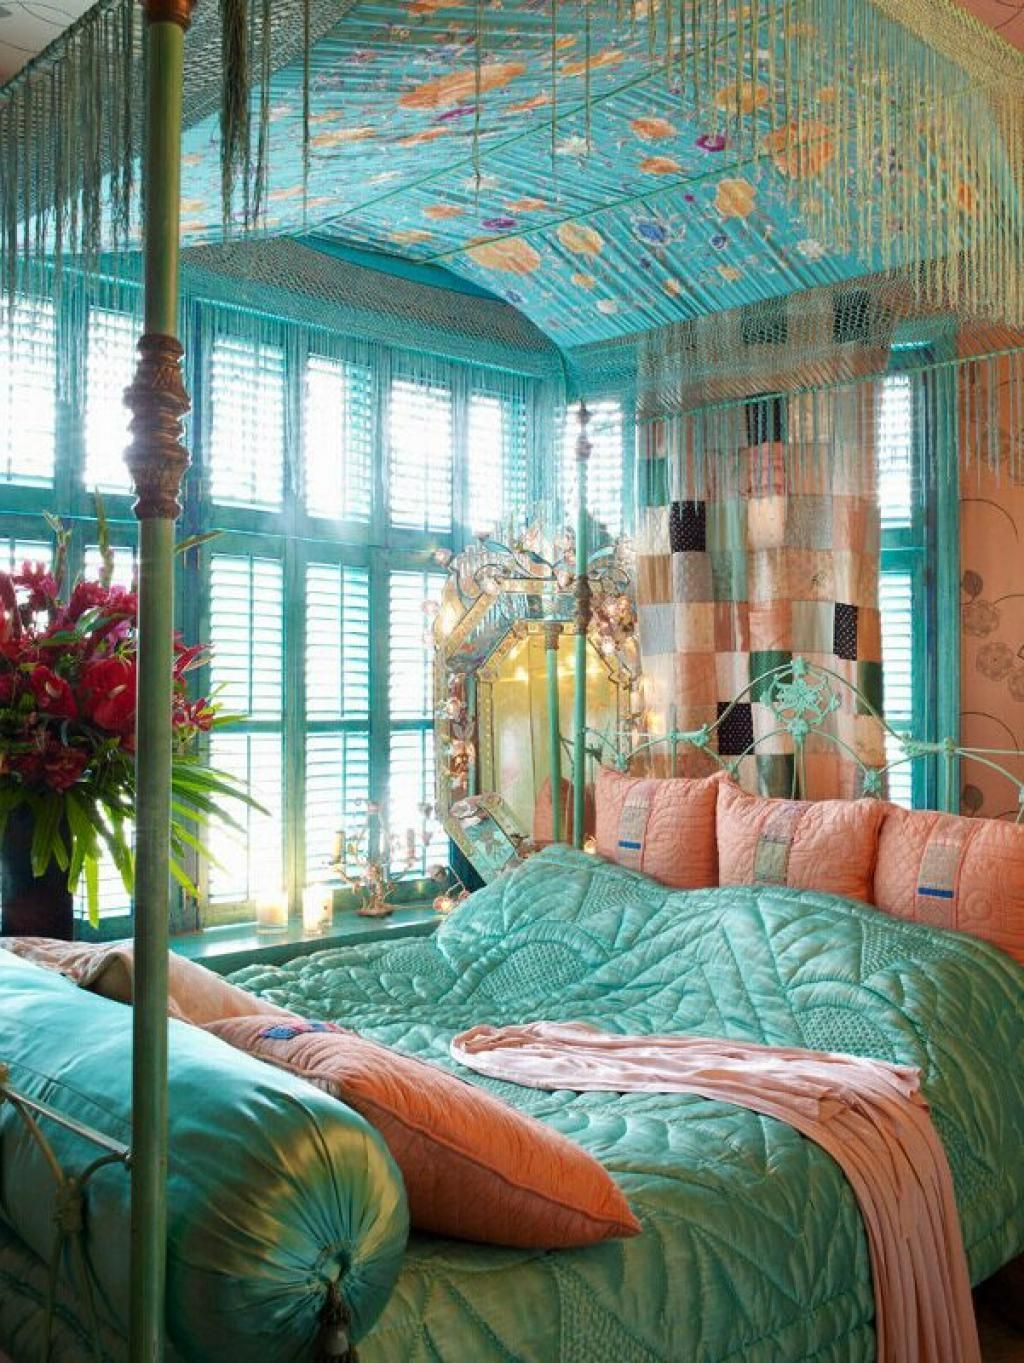 redecorating bedroom%0A Brilliant Chic Bohemian Bedroom Providing Comfortable Yet Unique Appearance  Also Bohemian Bedroom